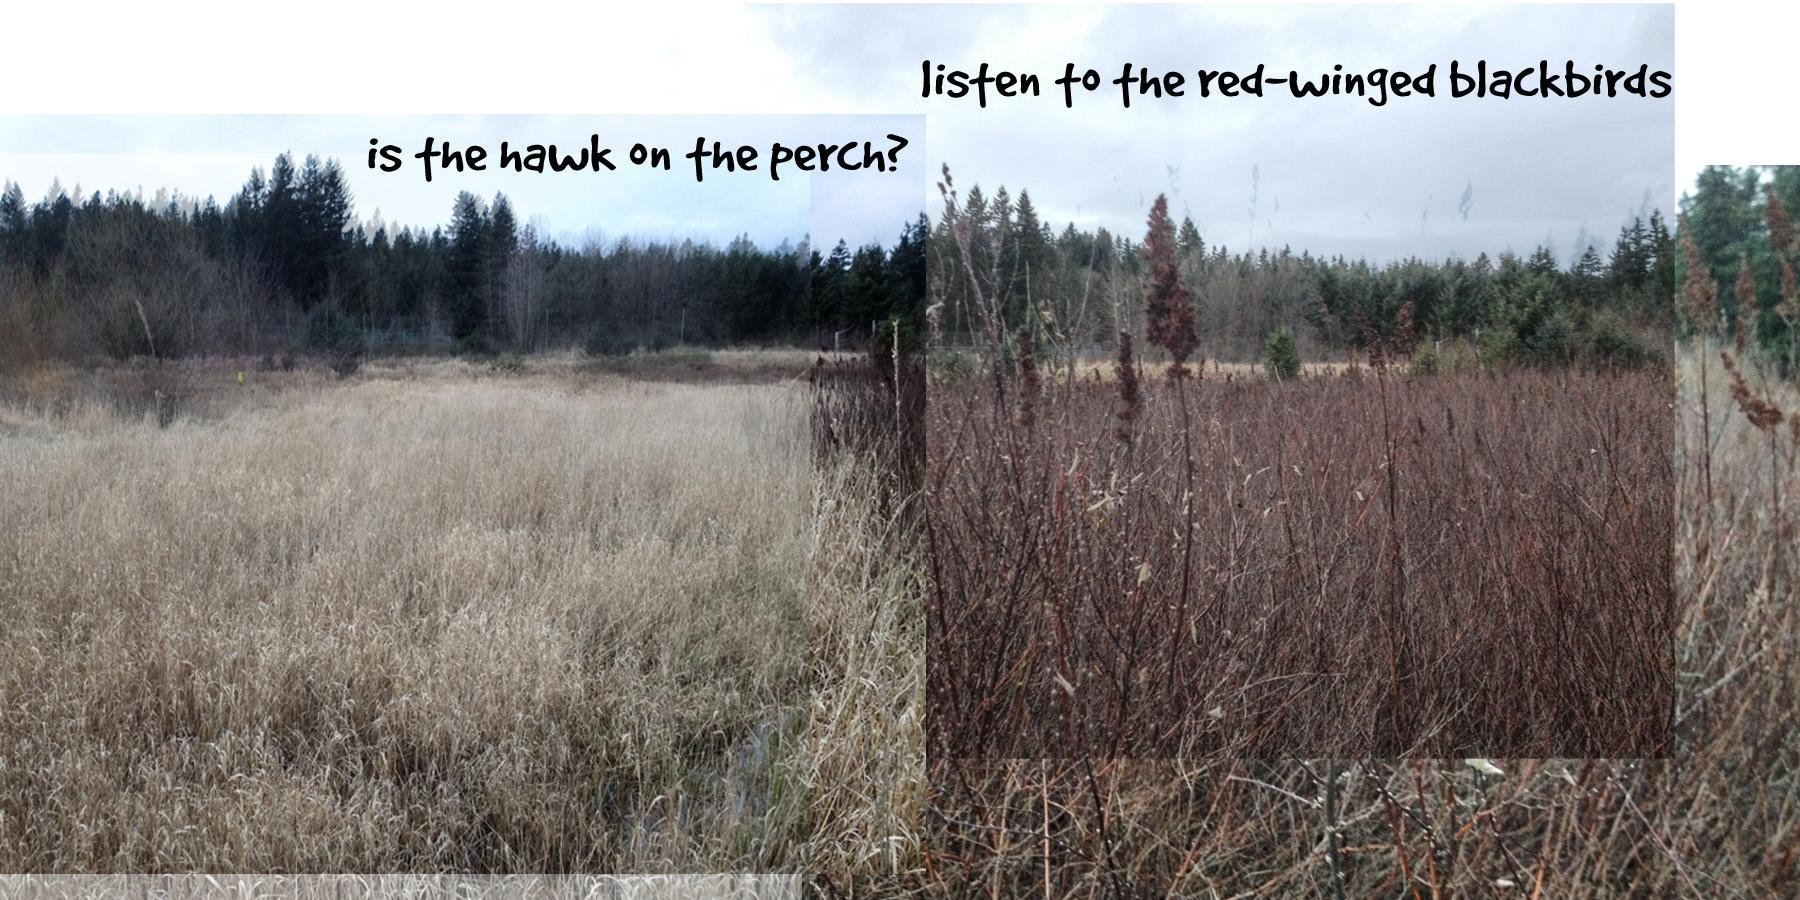 Ginger's Daily Walk - Adventures of a Golden Retriever in Pacific NW Suburbia - image 1 - student project